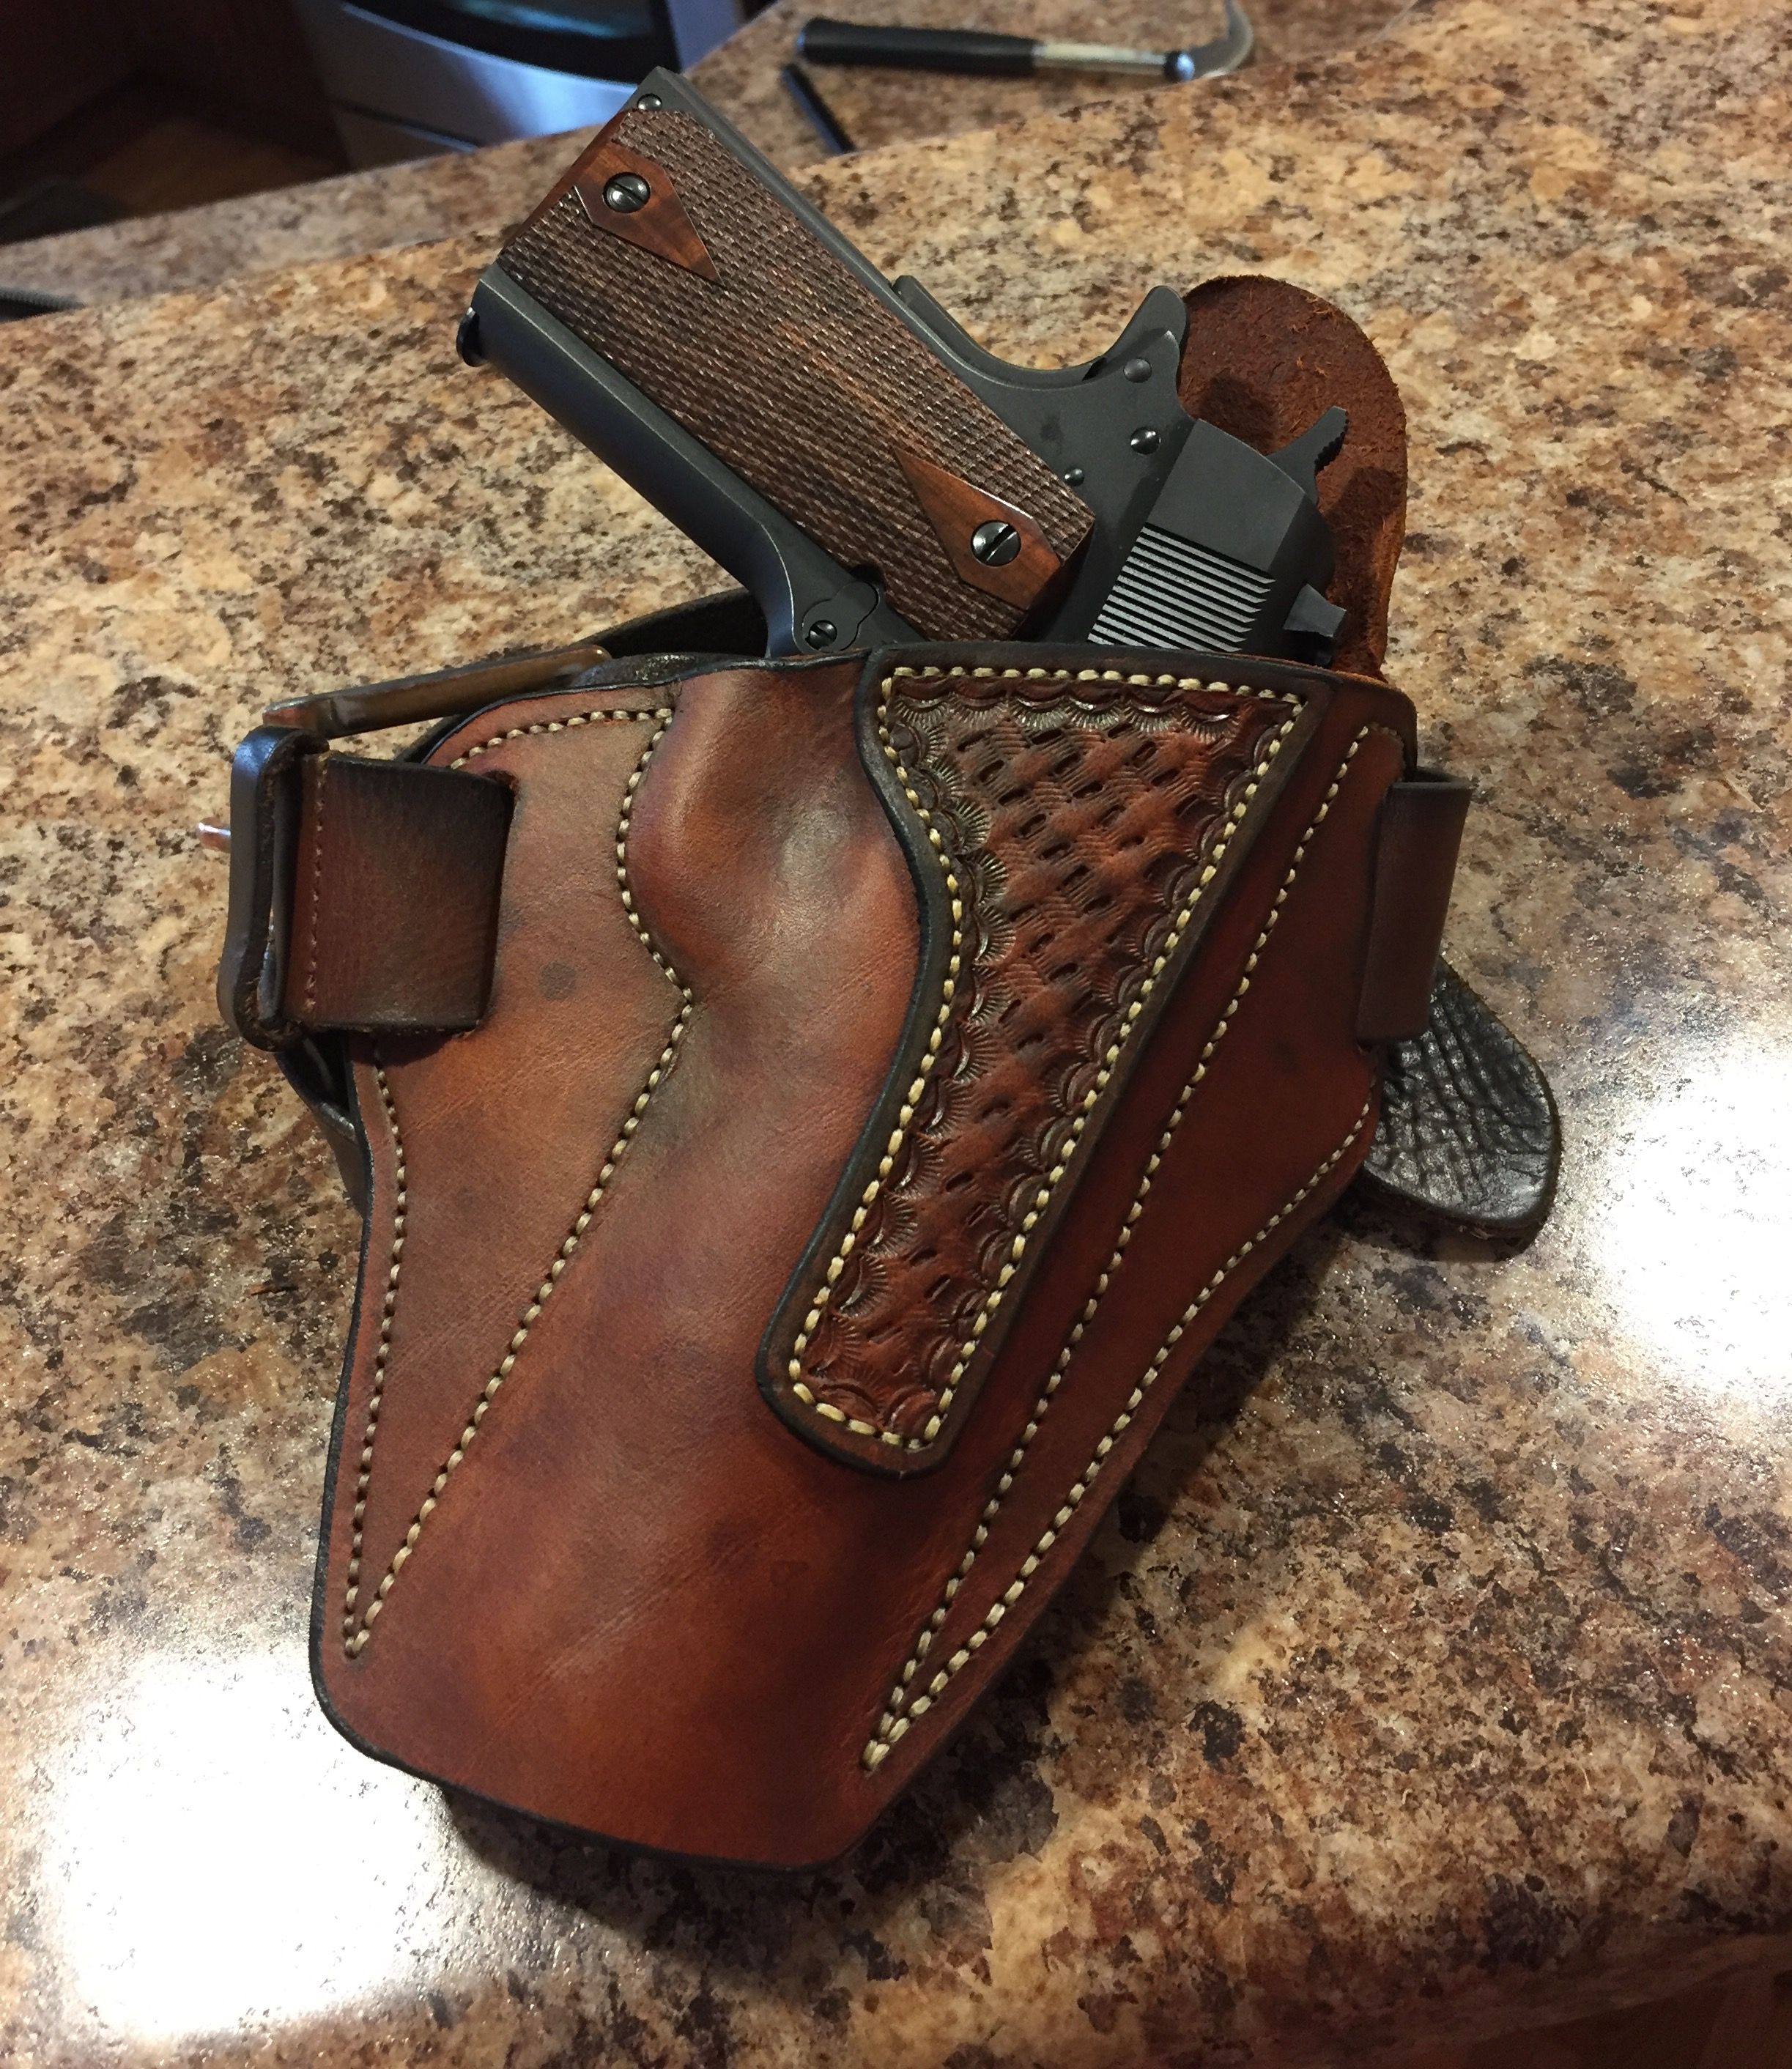 Pin On Lj S Gun Holsters Idea Room